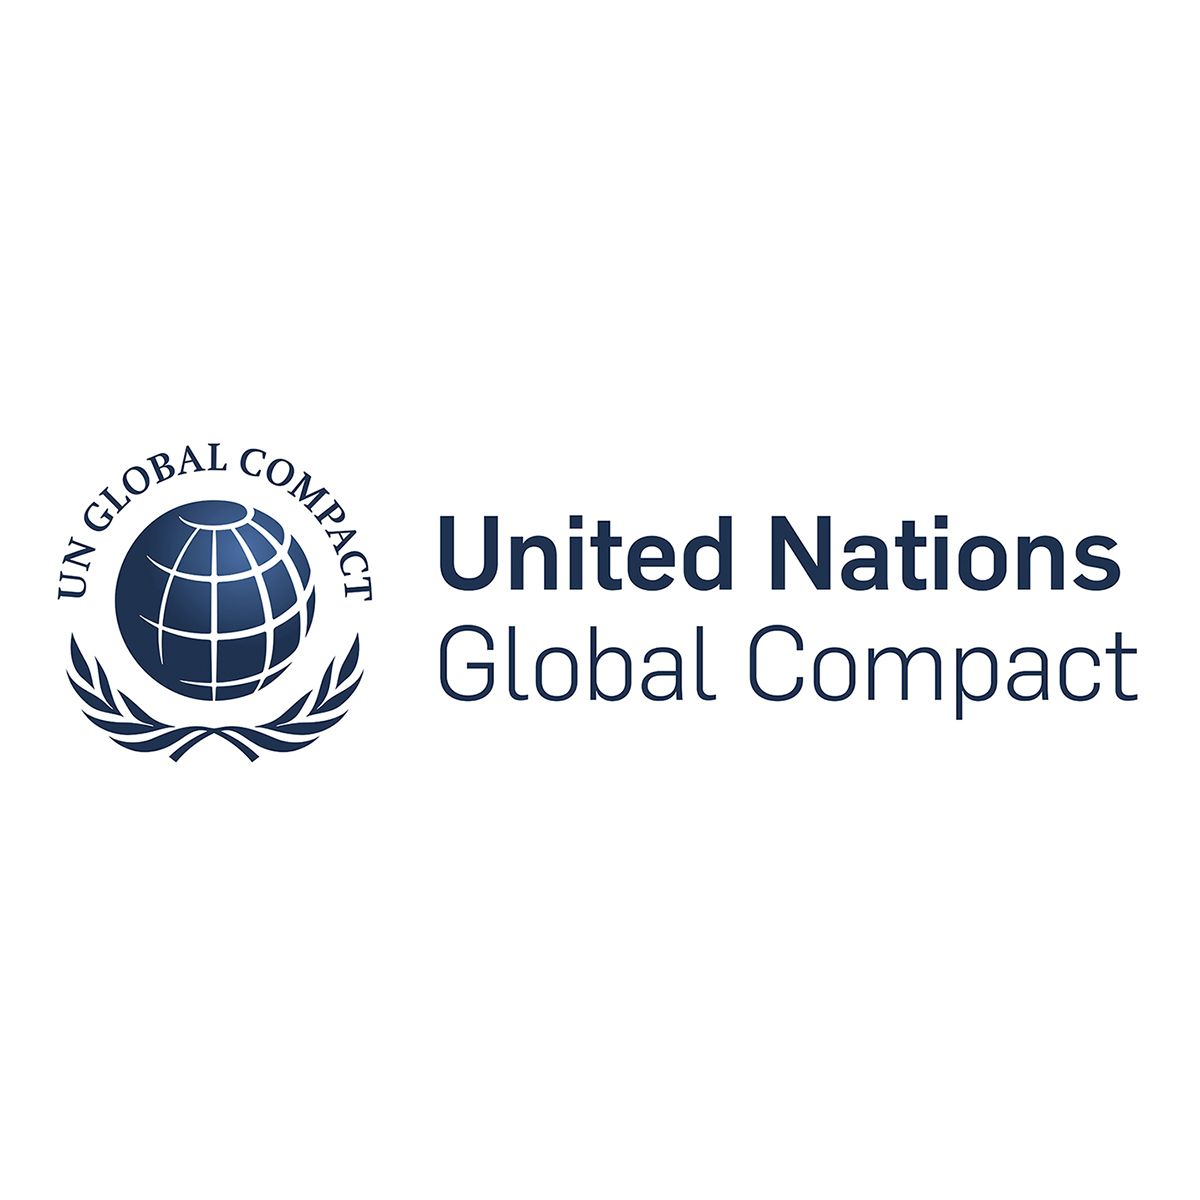 Proud signatories of the United Nations Global Compact